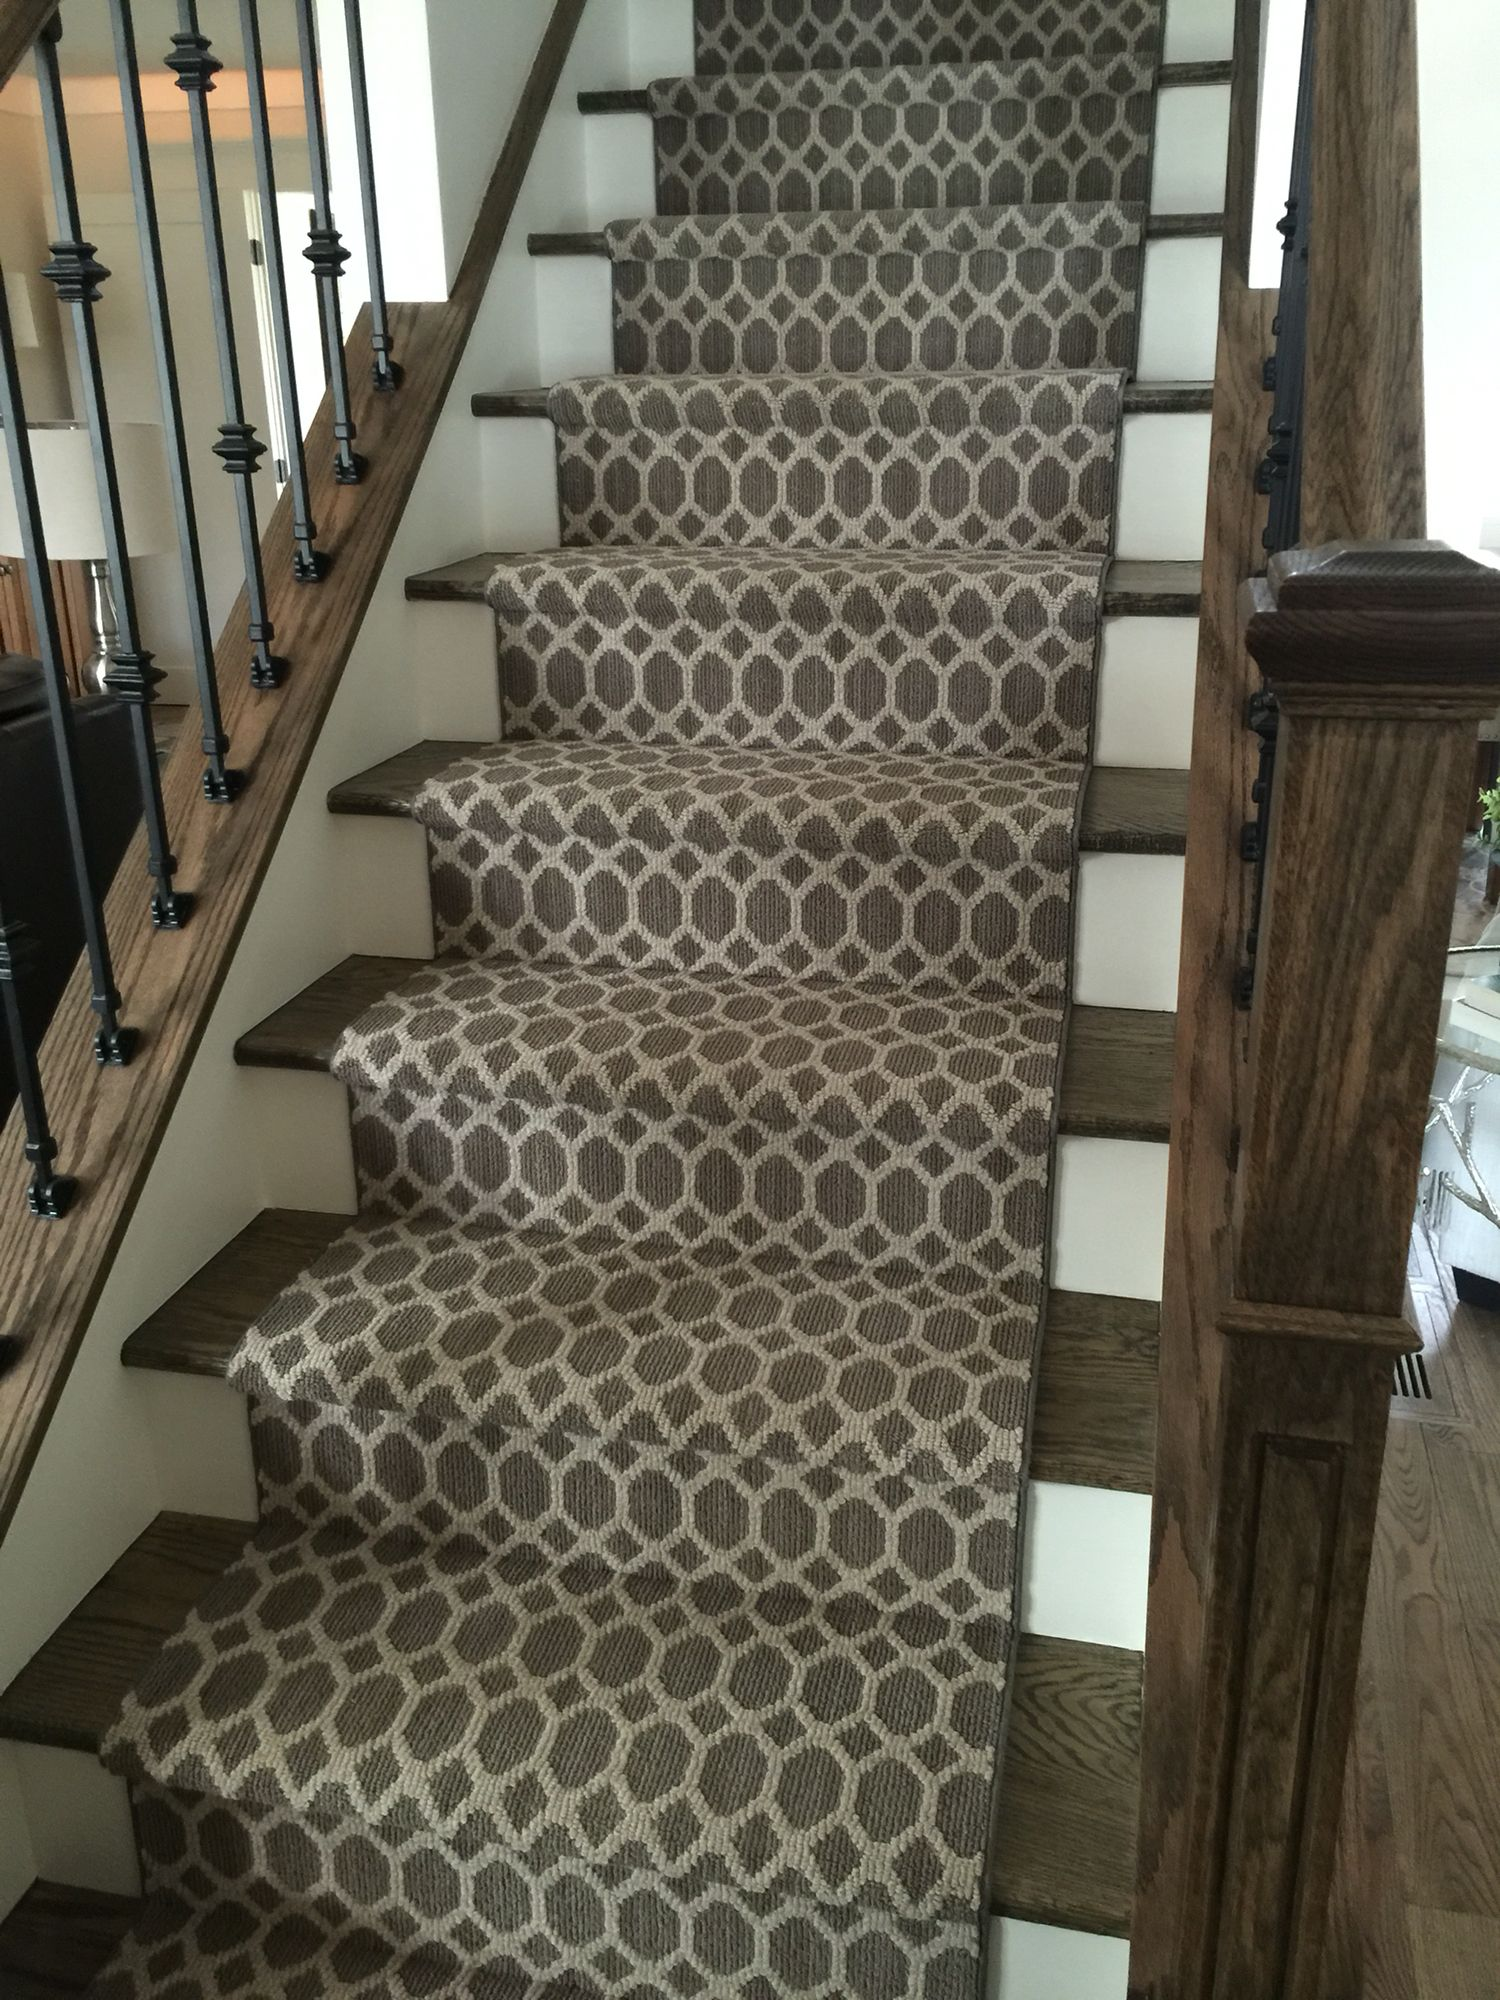 Geometric Stairs Geometric Staircase Melbourne: Geometric Staircase Runner Installation. A Stanton Carpet